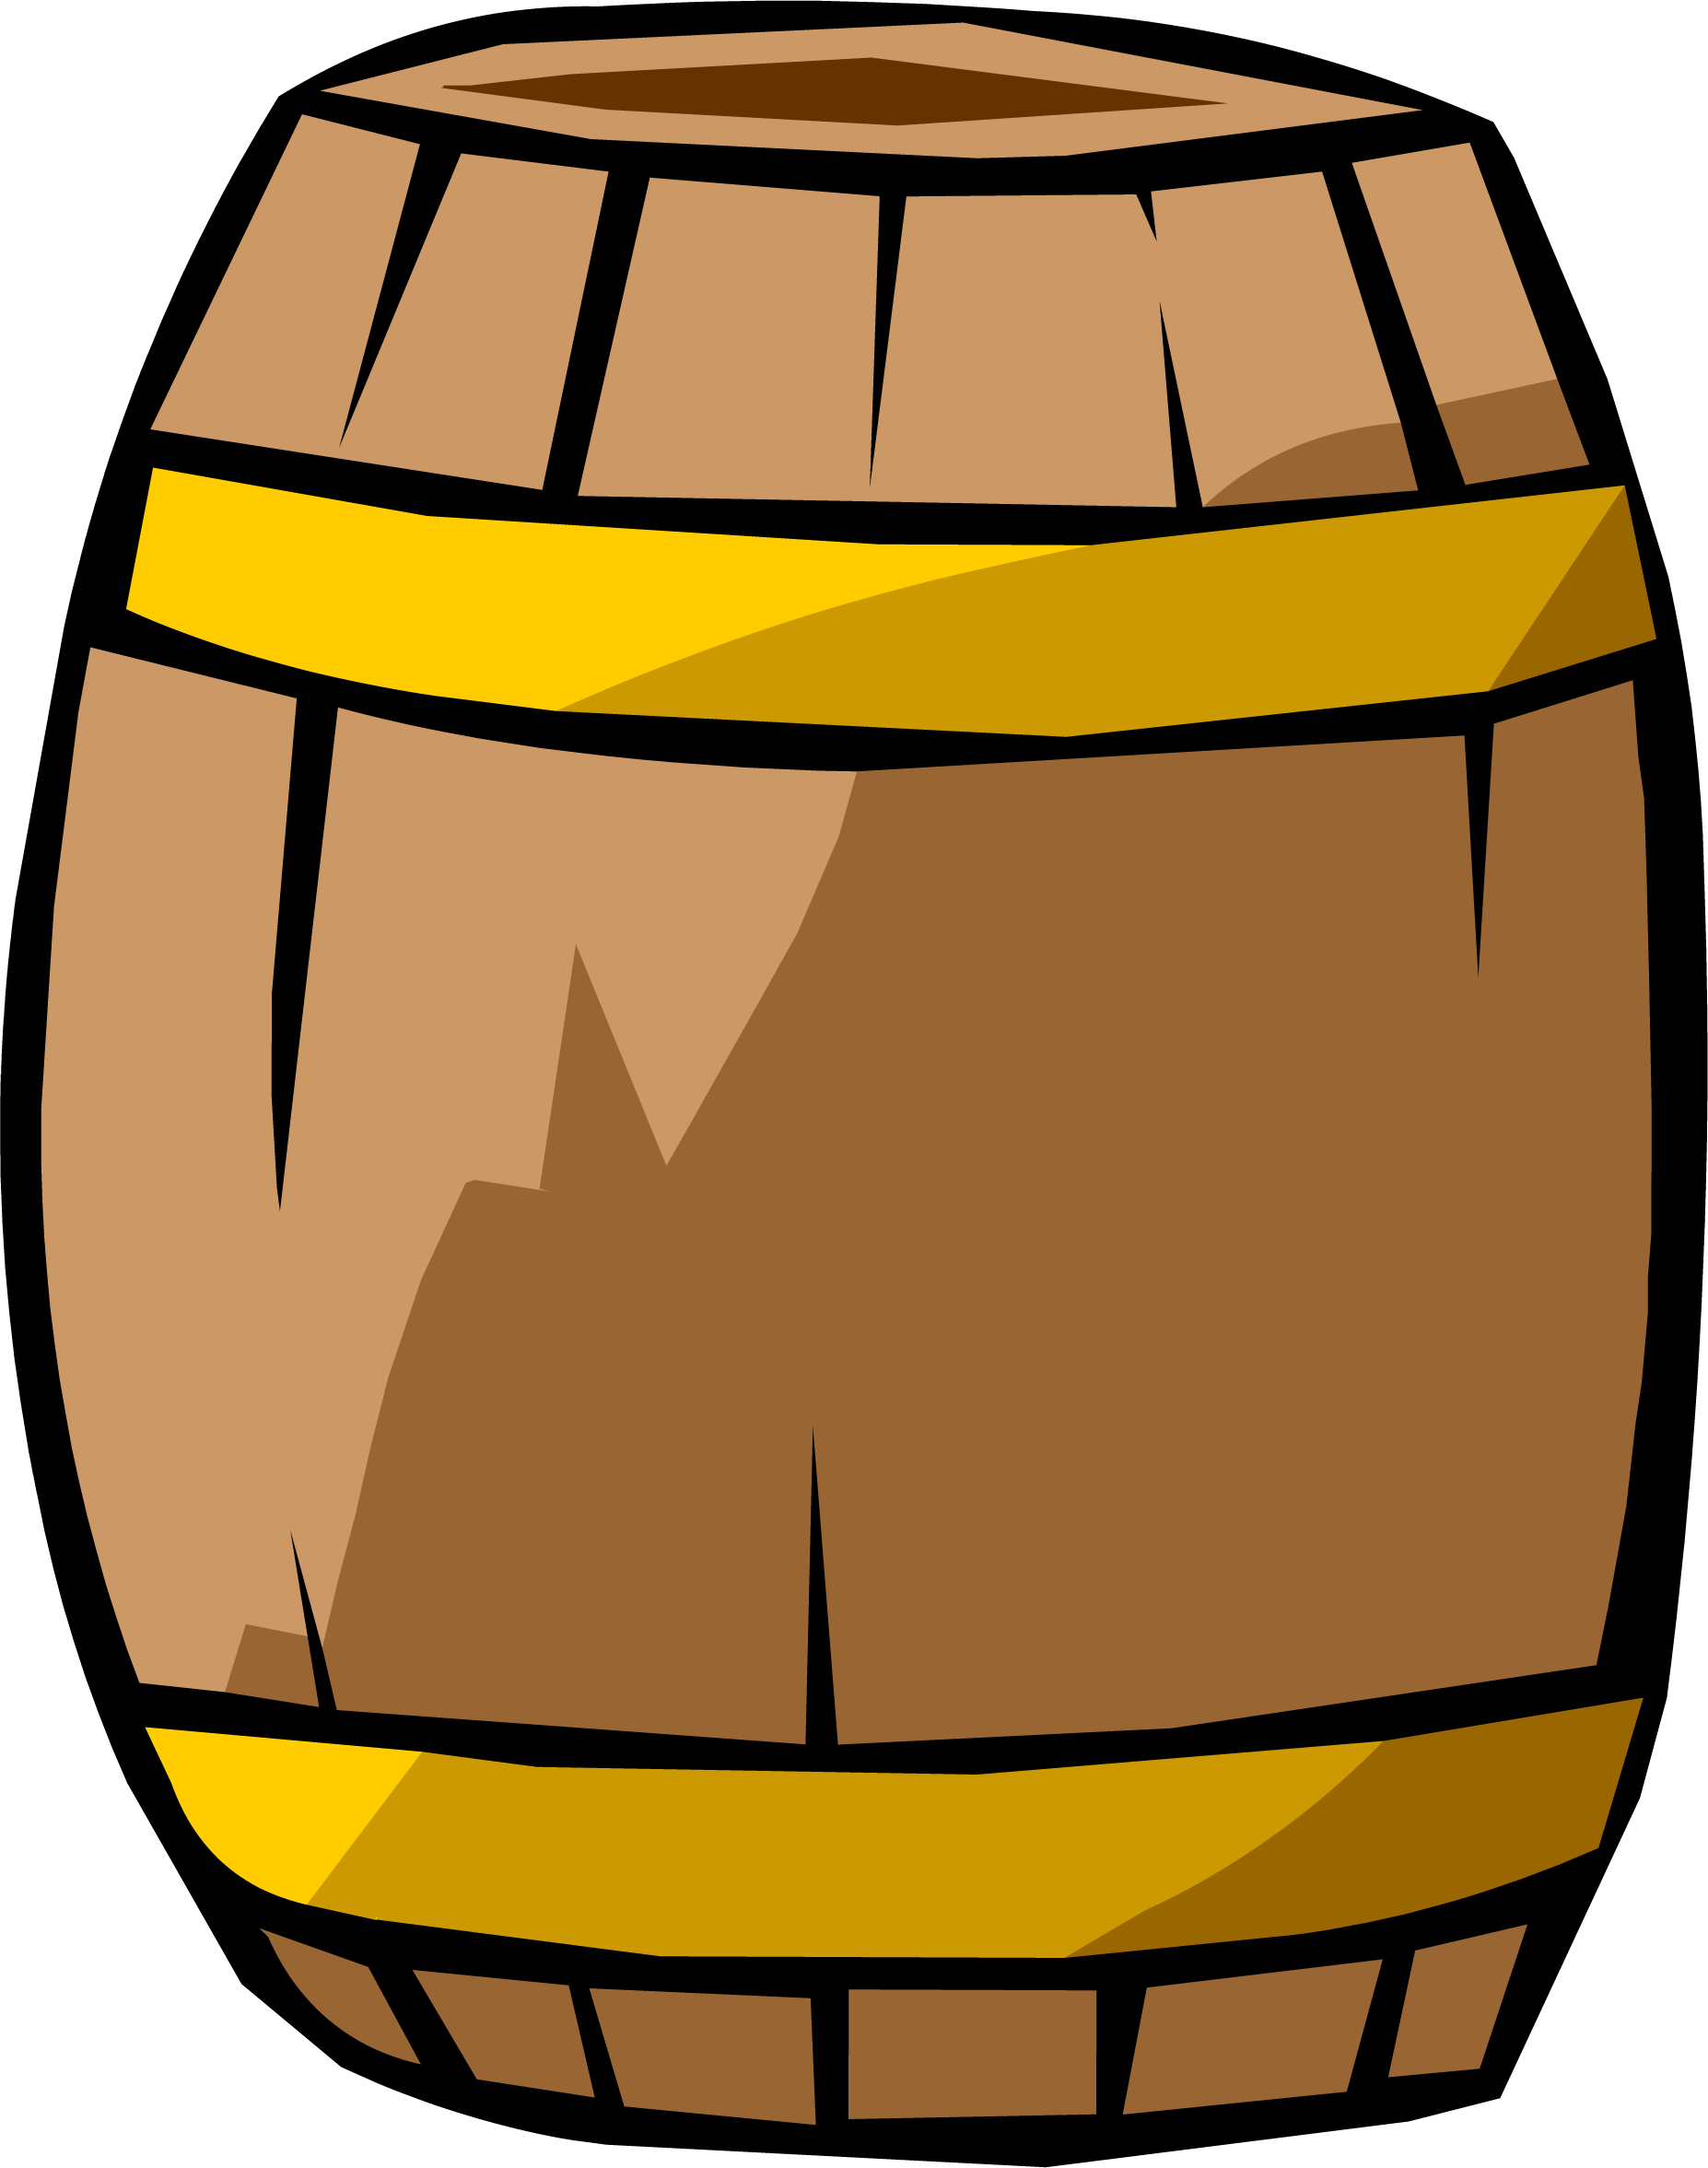 barrel clipart whisky barrel